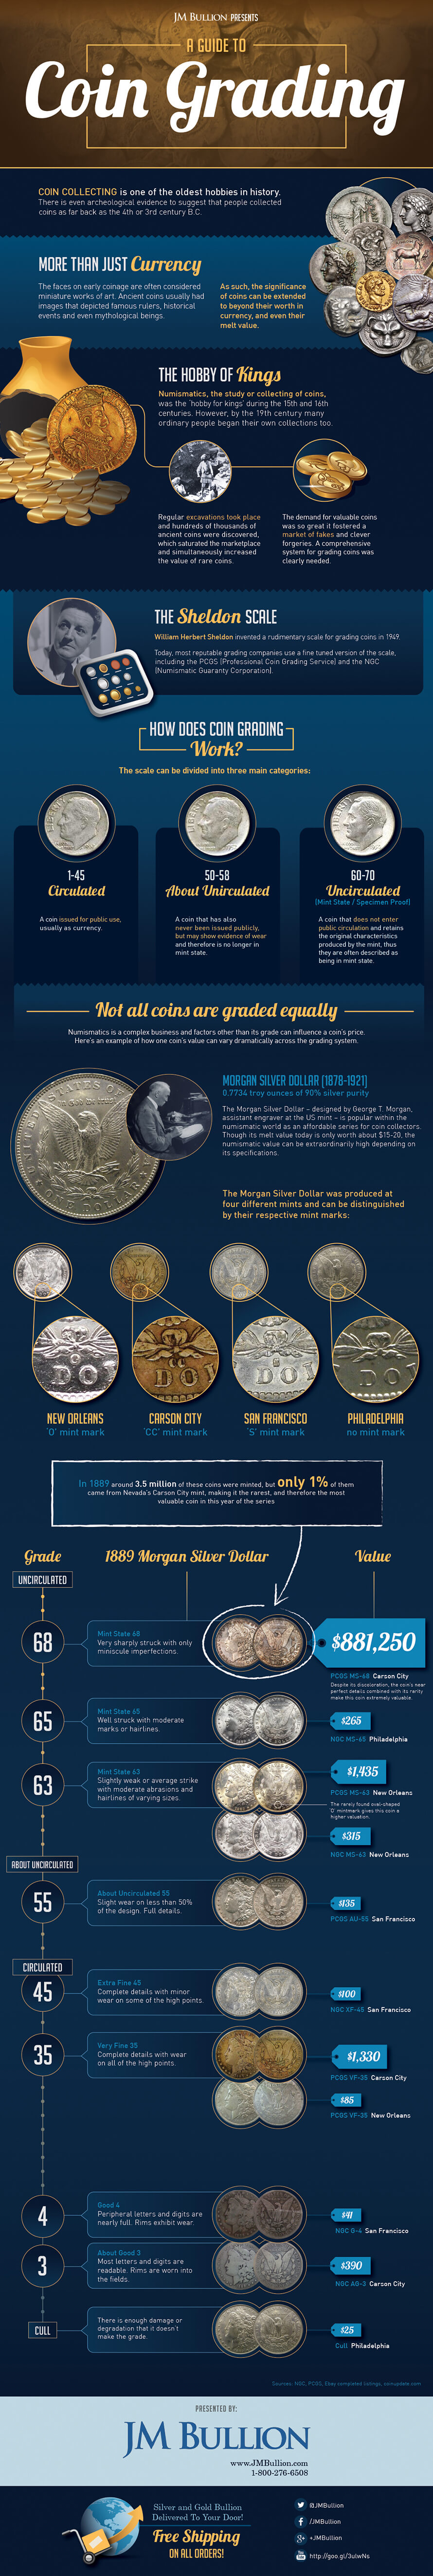 Coin Grading Infographic